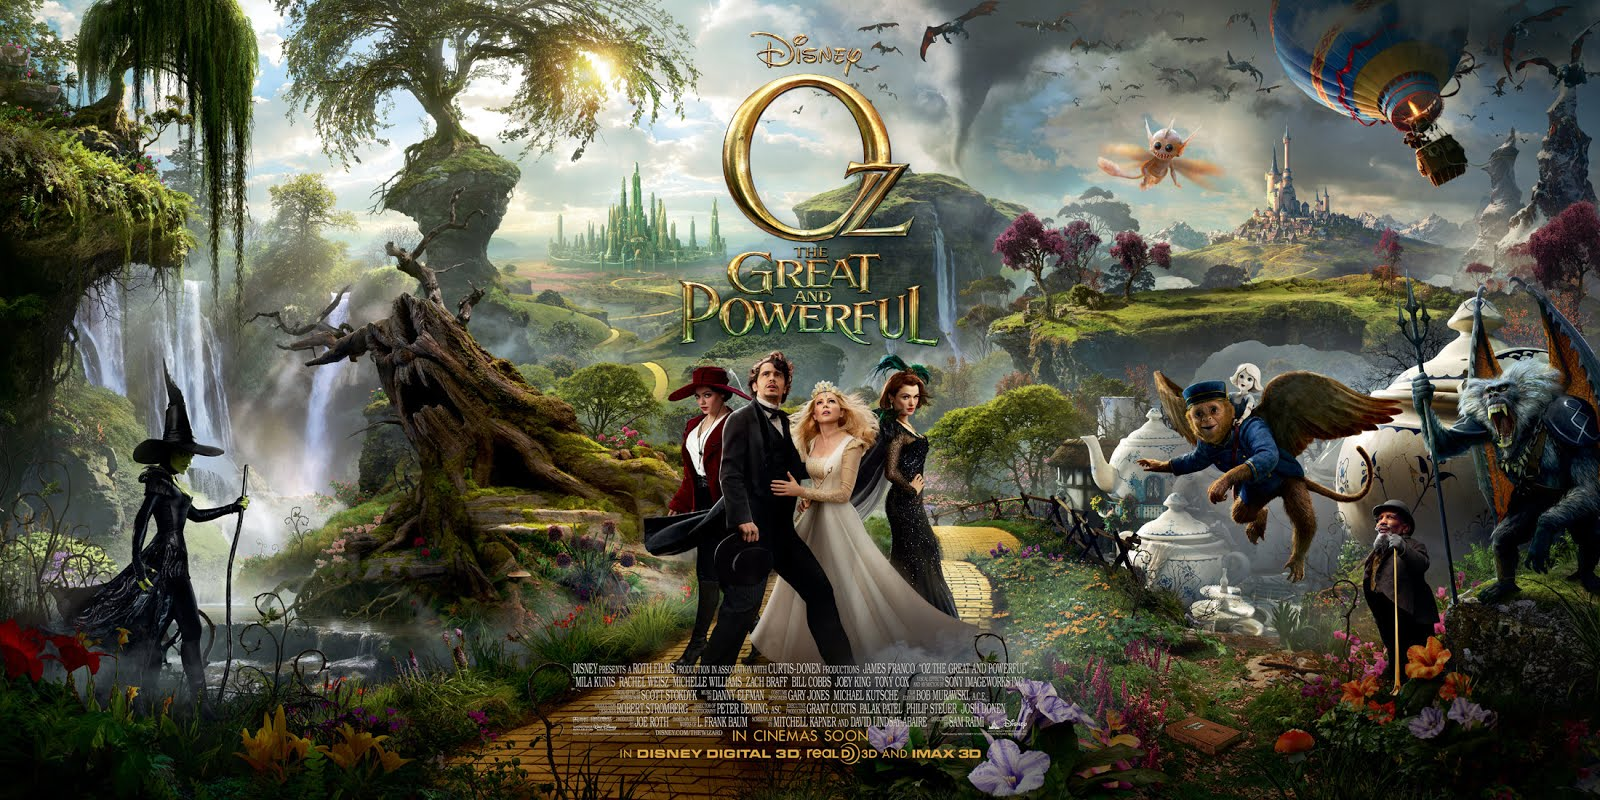 http://3.bp.blogspot.com/-N3weTF7eeMM/UQ9fDbXMUZI/AAAAAAAABvs/vBhq17g9YJU/s1600/oz-the-great-and-powerful-banner-poster.jpg